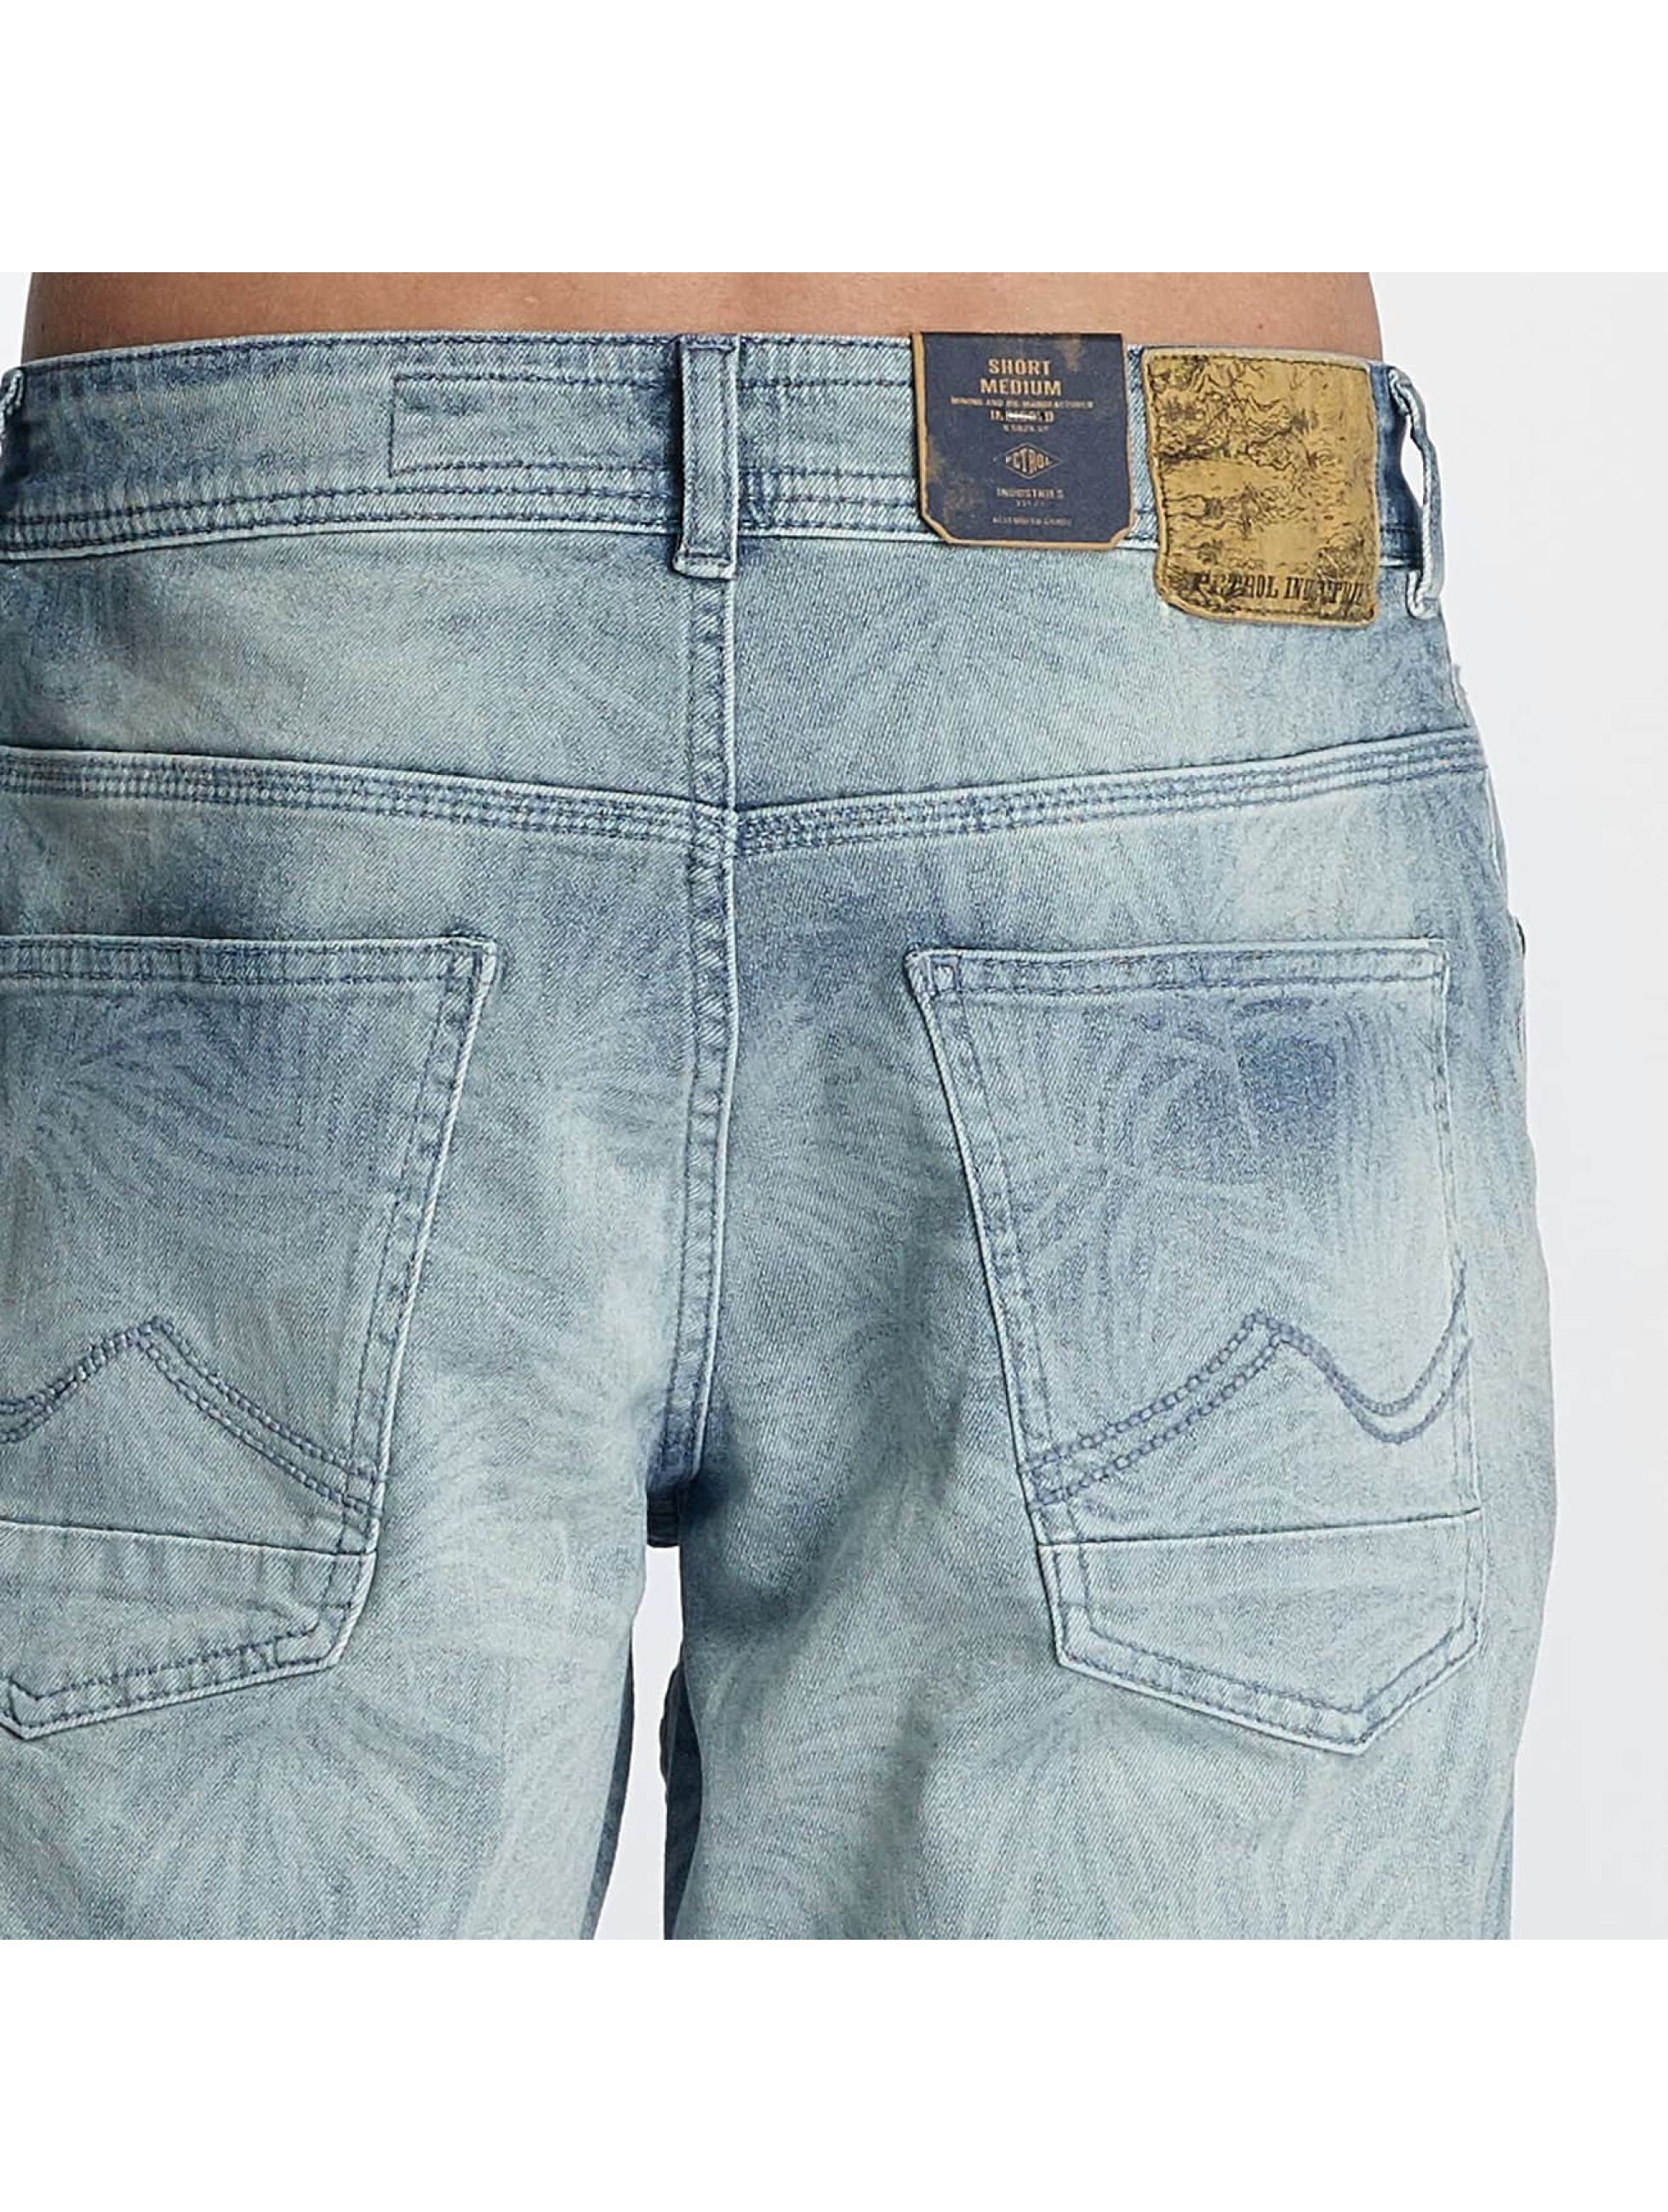 Petrol Industries Short Jeans indigo